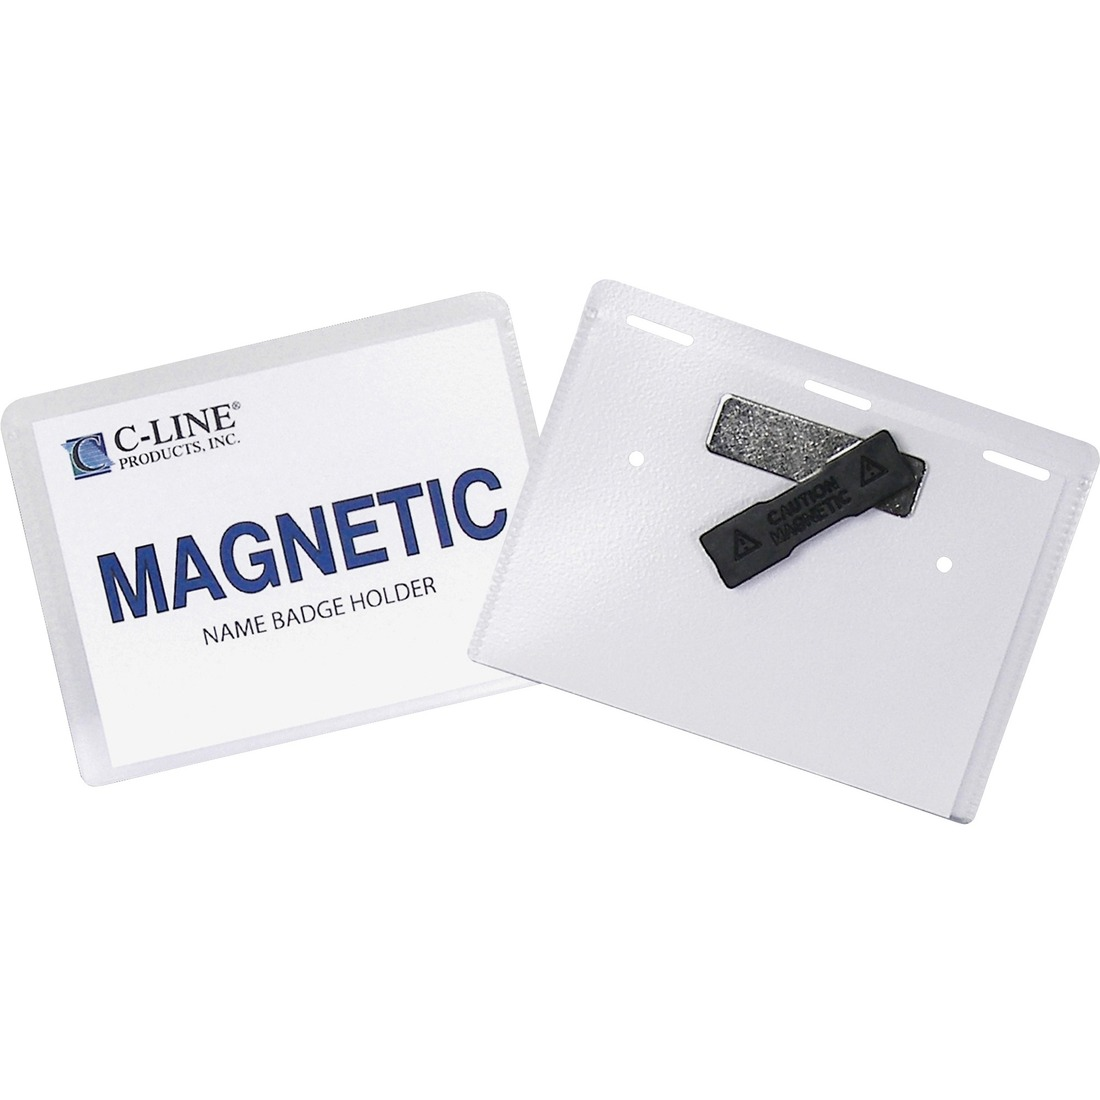 C-Line Laser/Inkjet Magnetic Name Badge Holder Kit